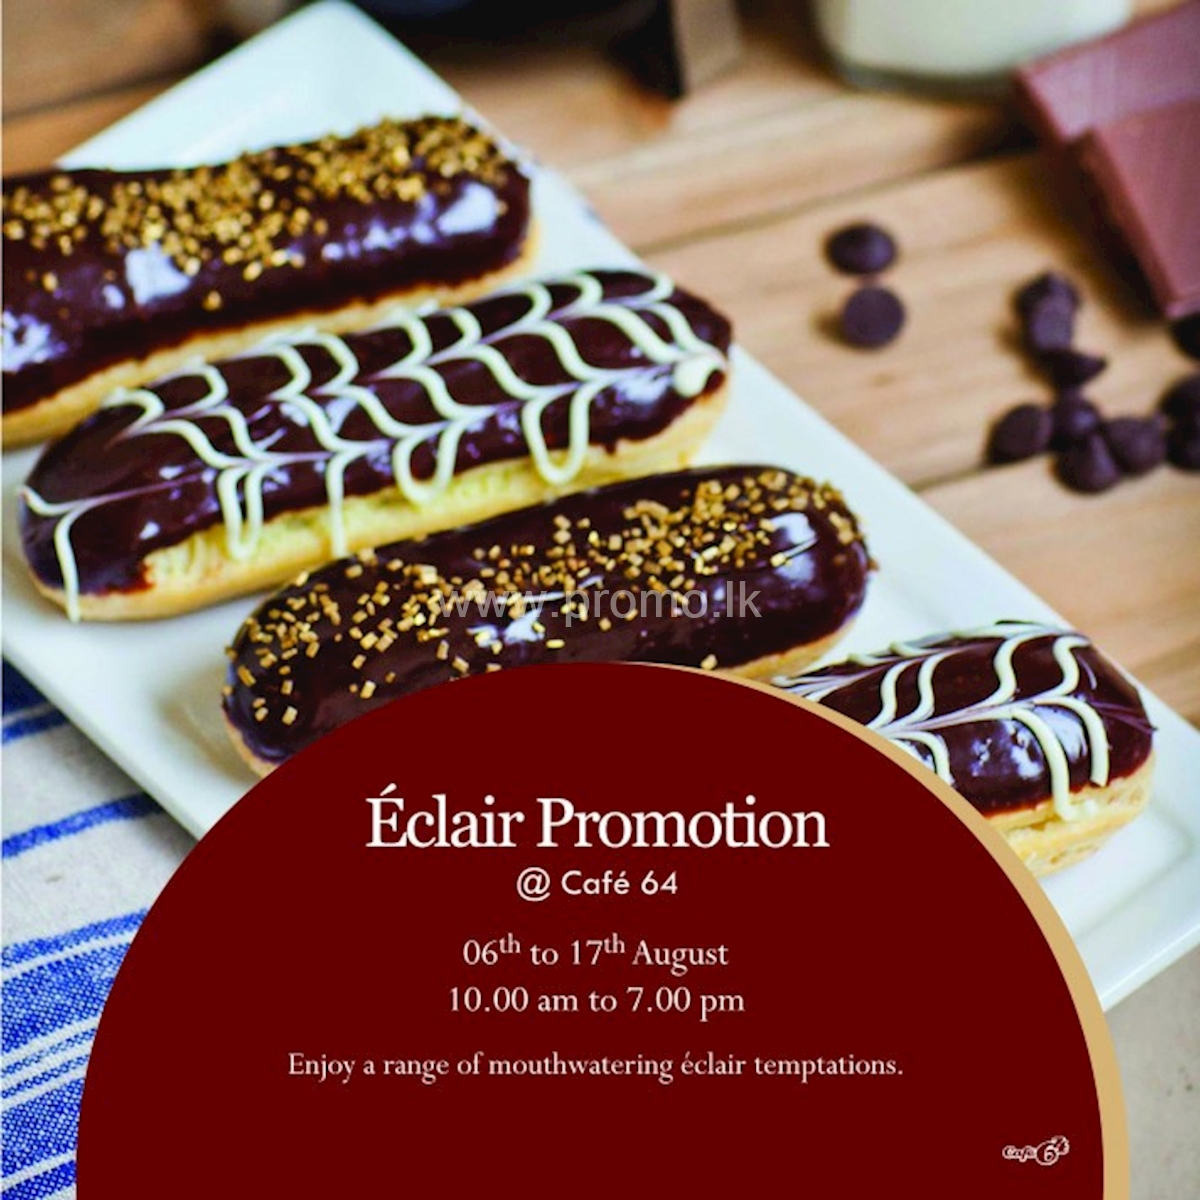 Eclair Promotion at Cafe 64